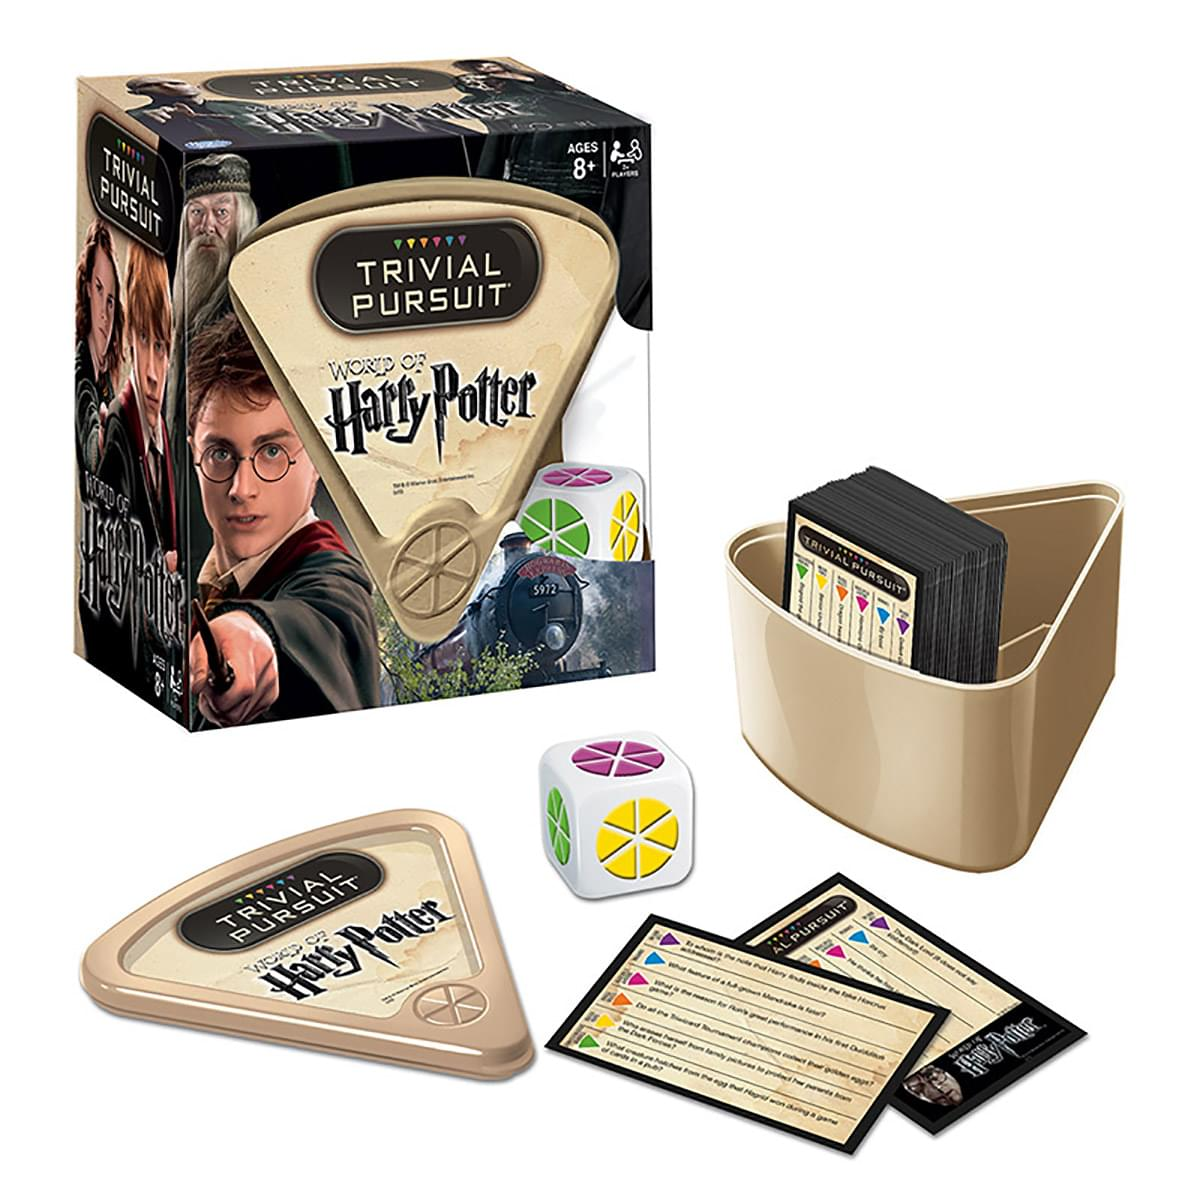 Harry Potter Ultimate Edition Trivial Pursuit Board Game